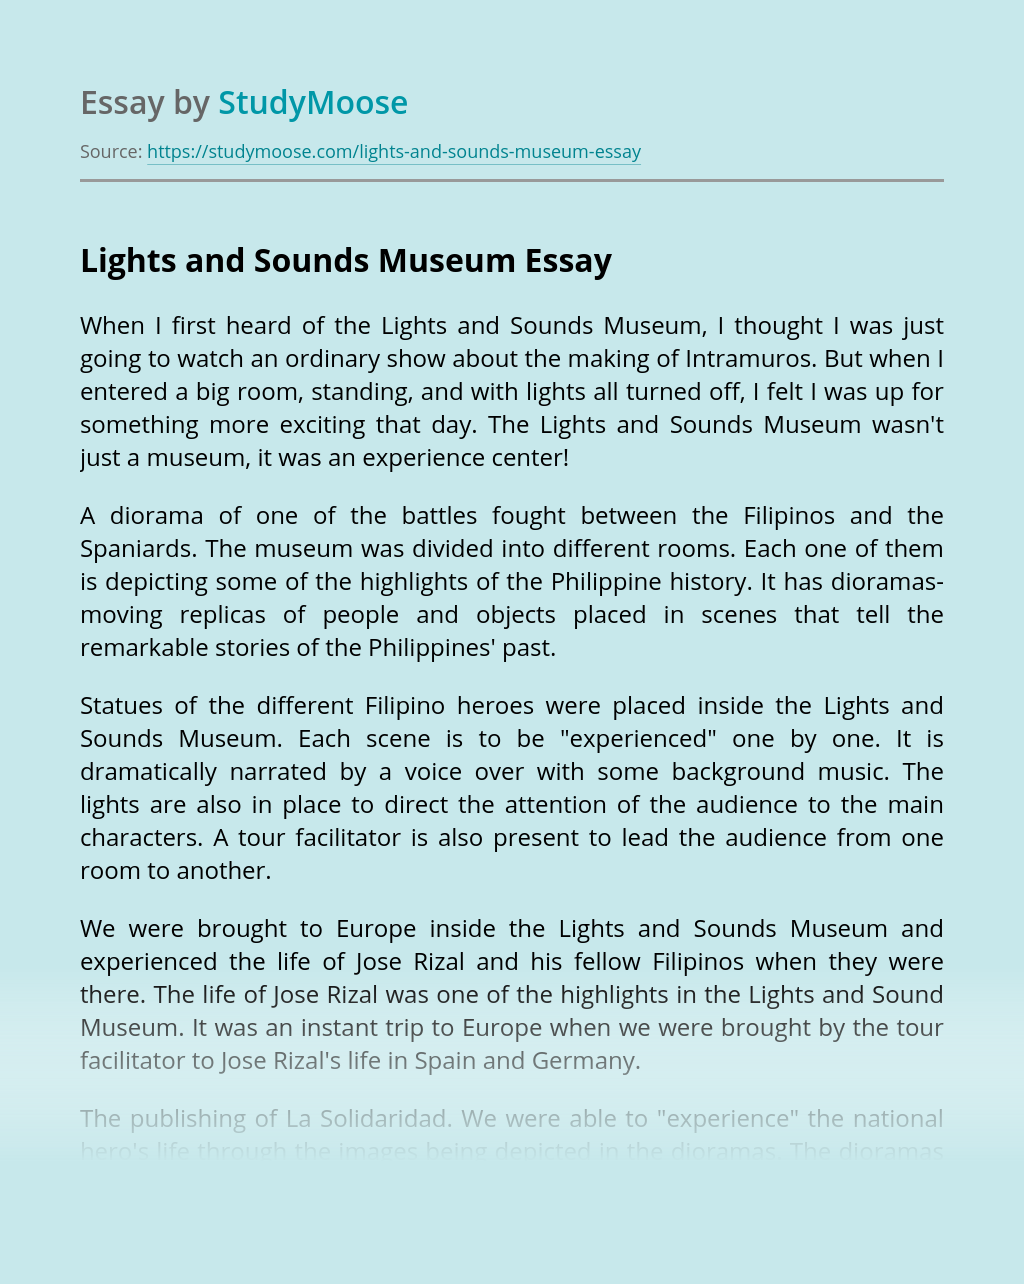 Lights and Sounds Museum